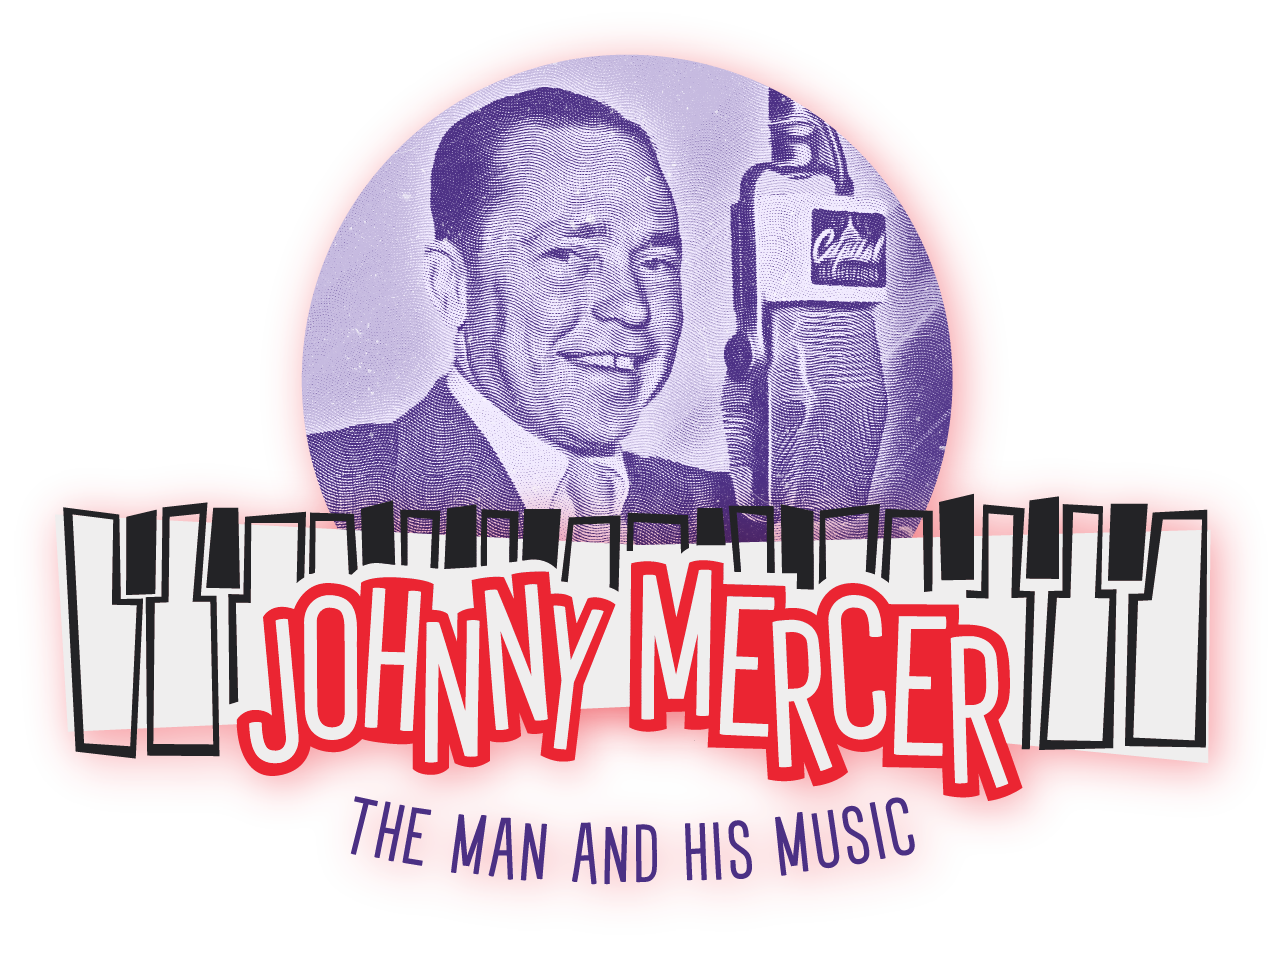 Johnny Mercer The Man and His Music